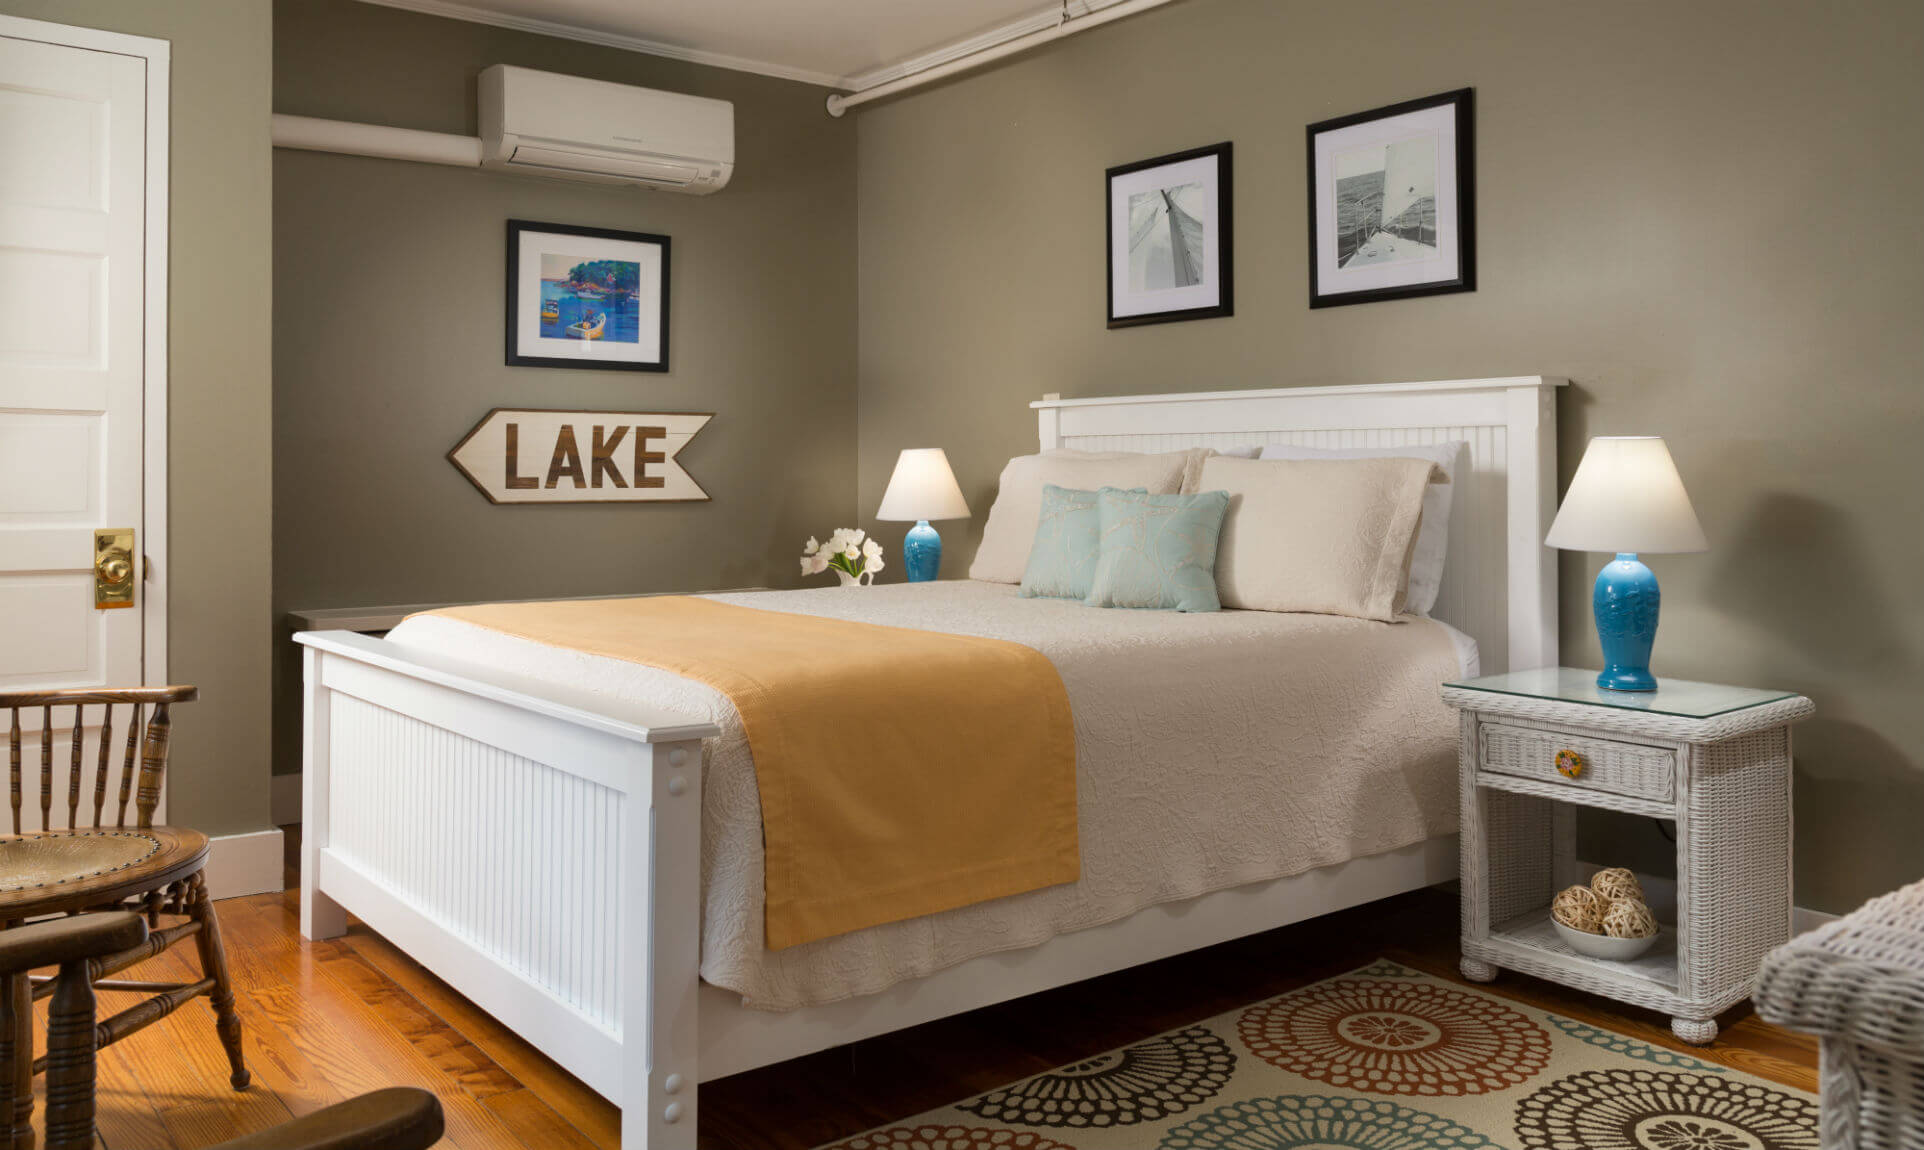 Comfortable bed next to lake sign and floral rug